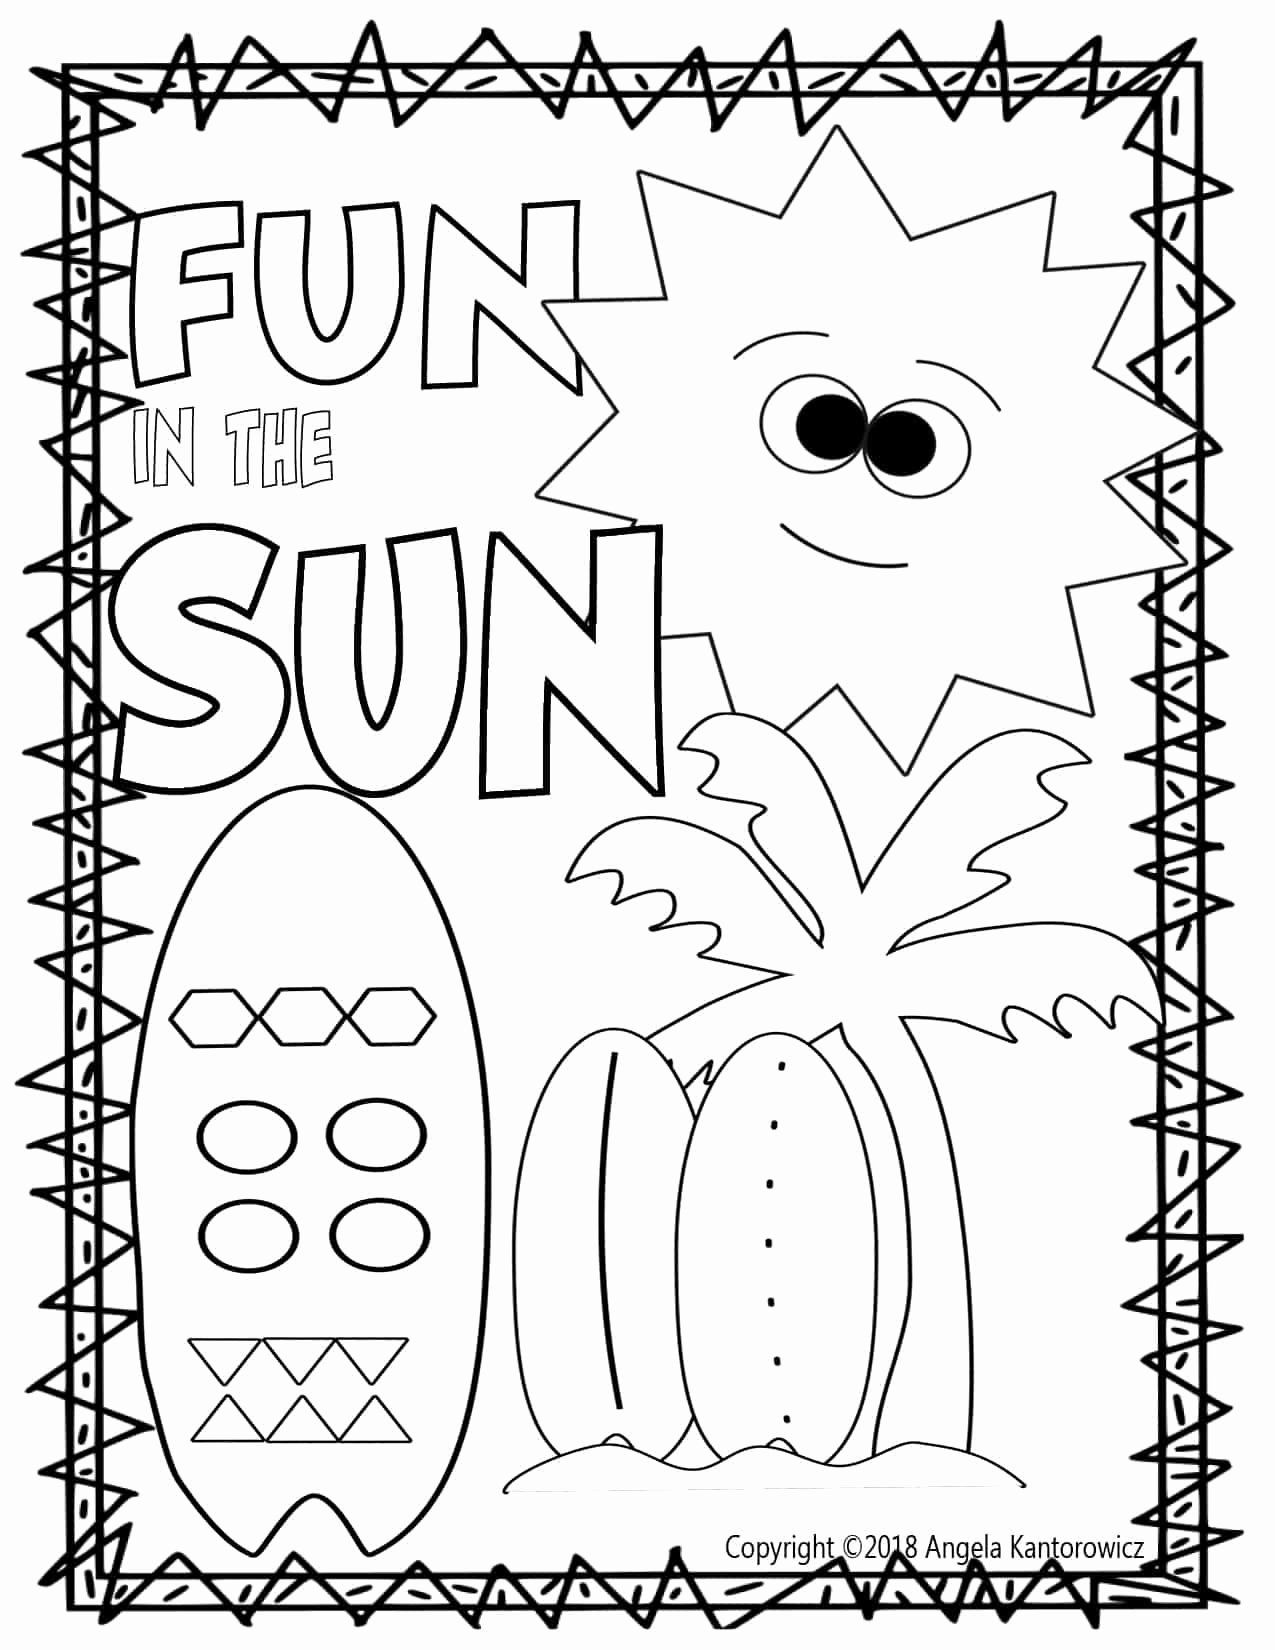 - Summer Fun Coloring Sheet In 2020 Sun Coloring Pages, Summer